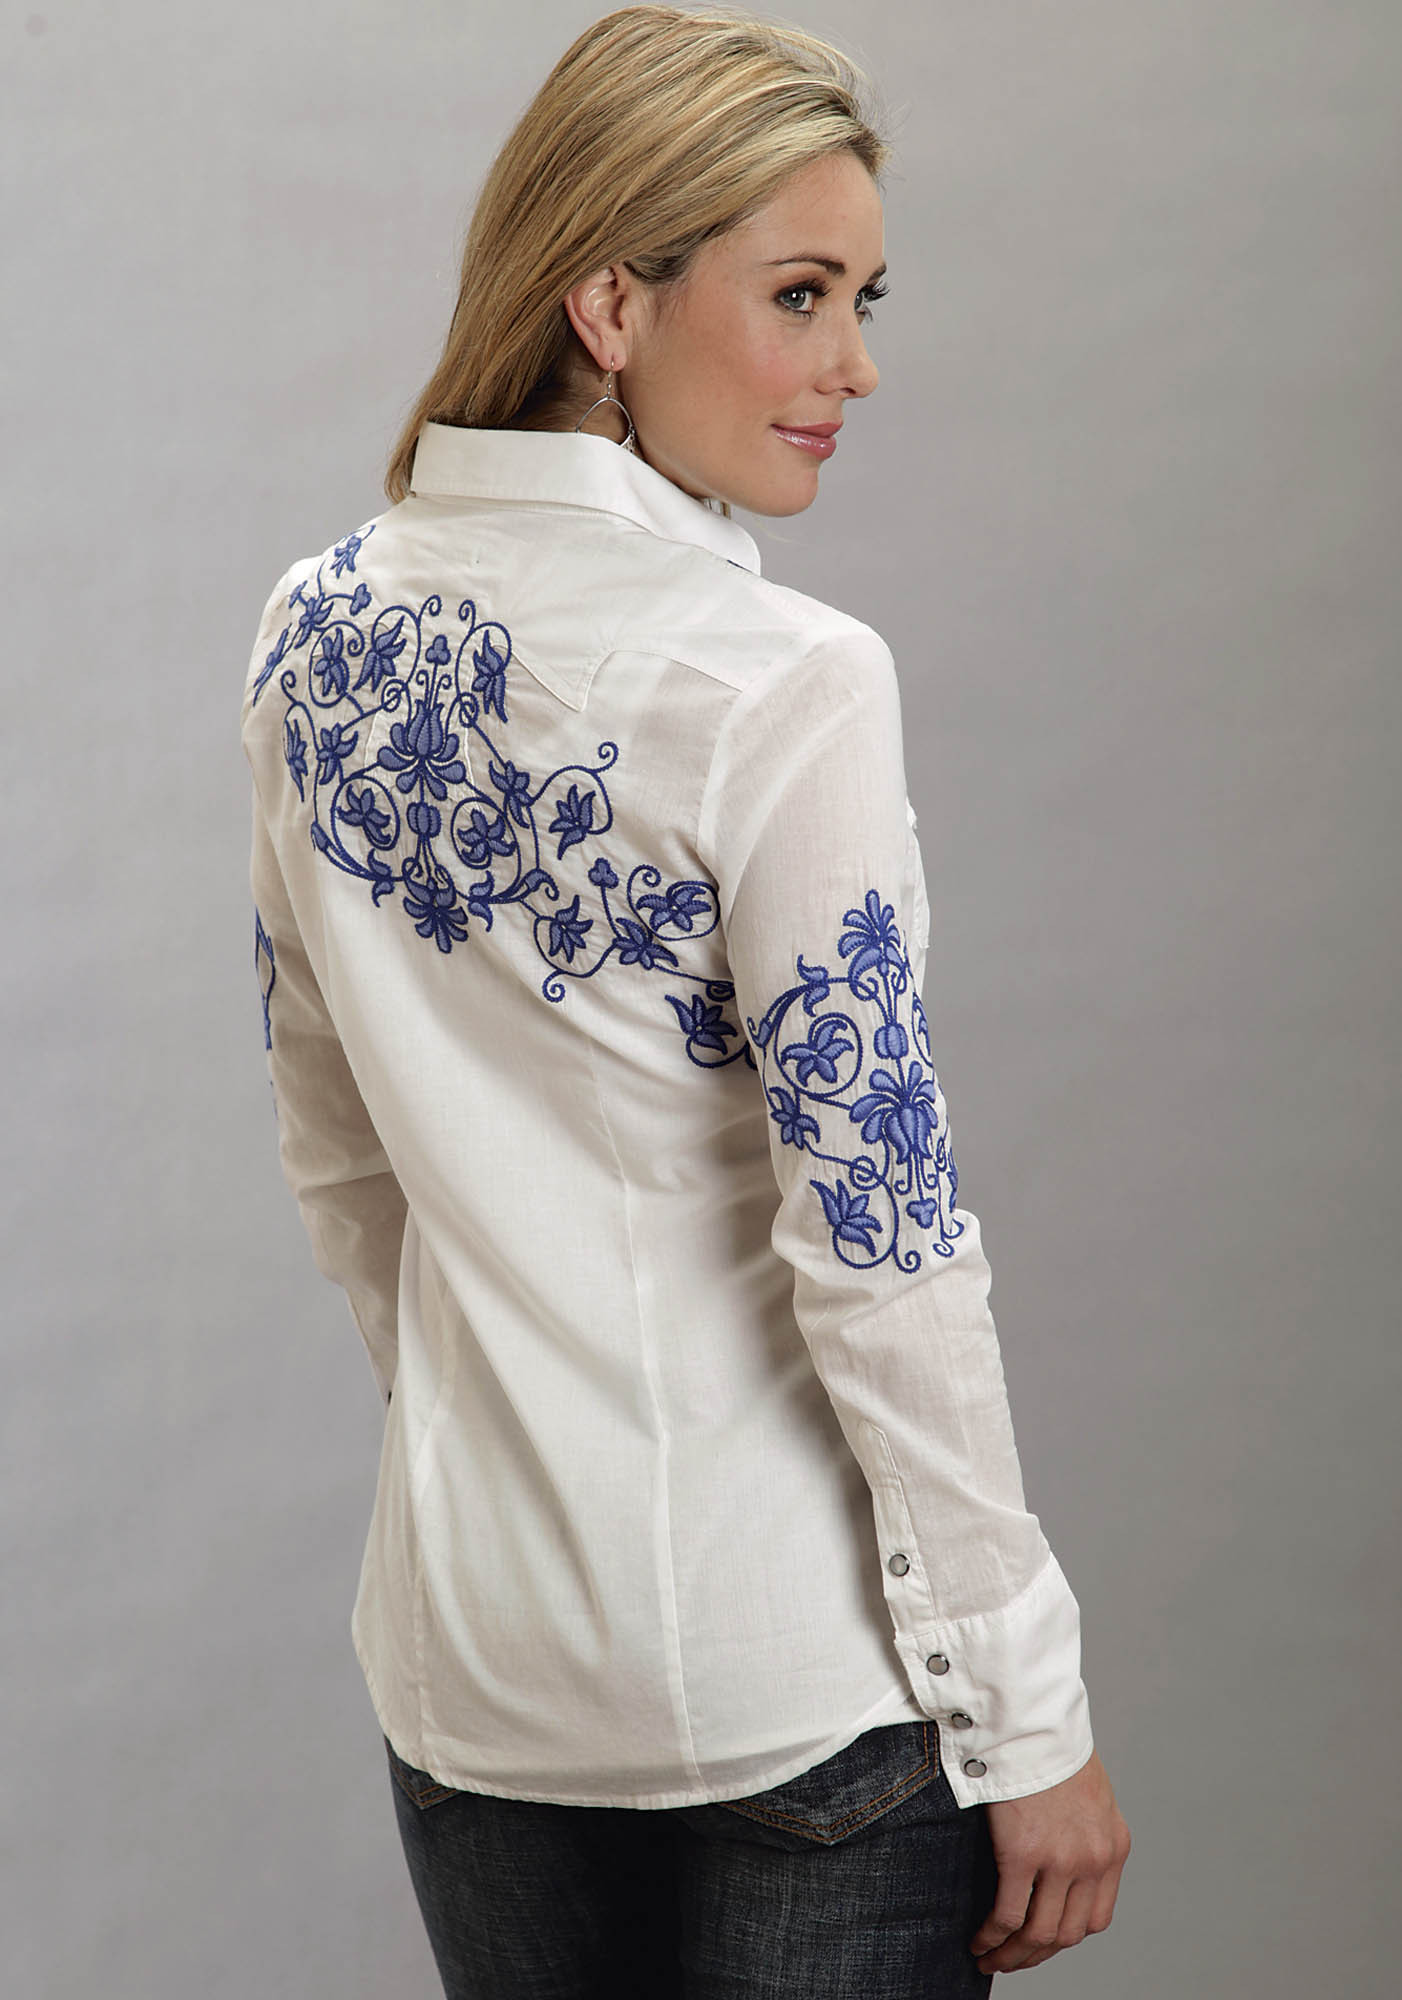 Stetson women s white cotton lawn embroidered long sleeve